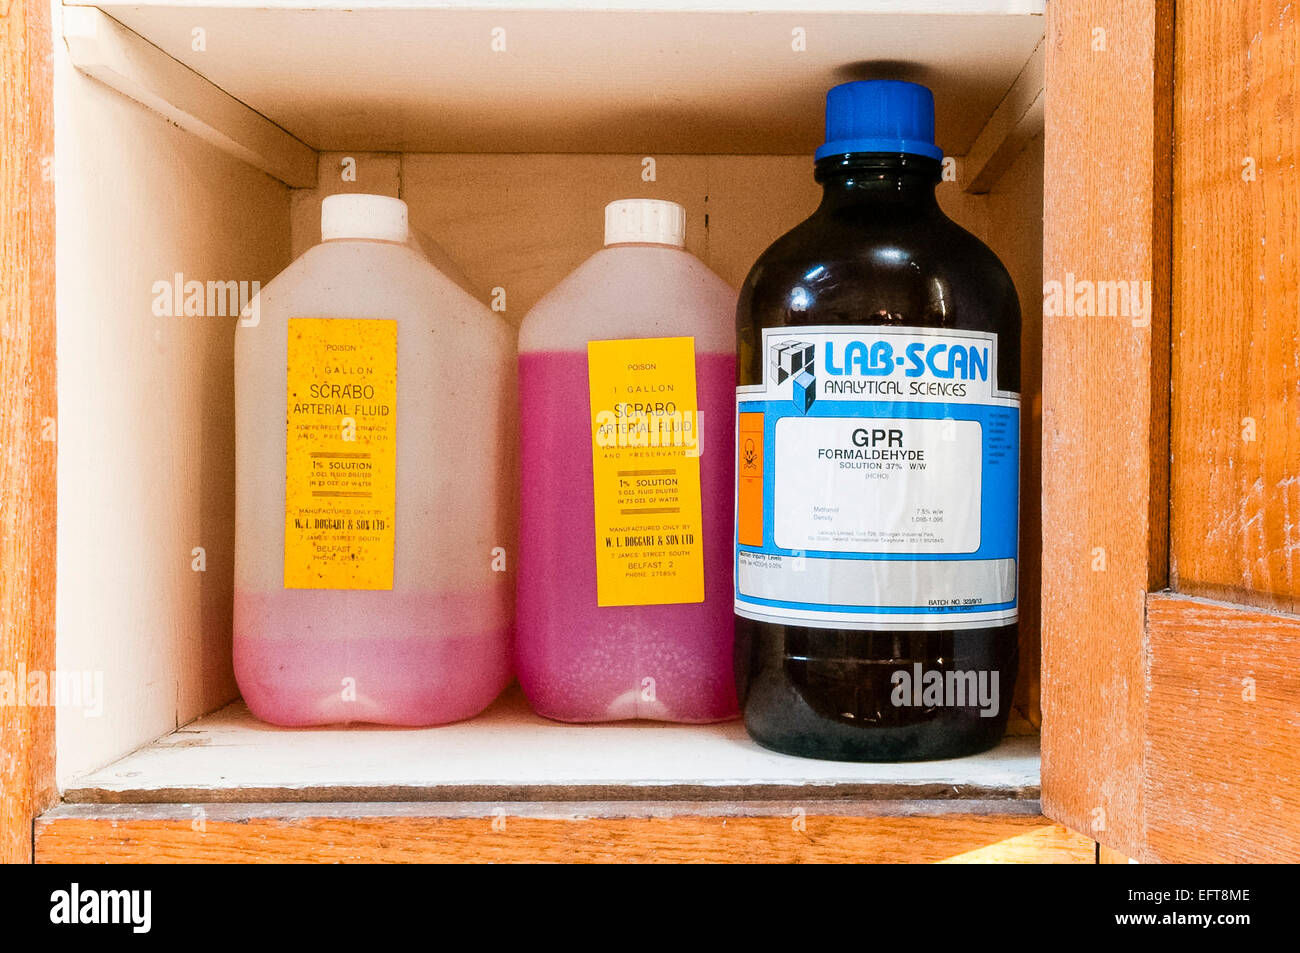 Arterial fluid and formaldehyde in a cupboard in a mortuary - Stock Image